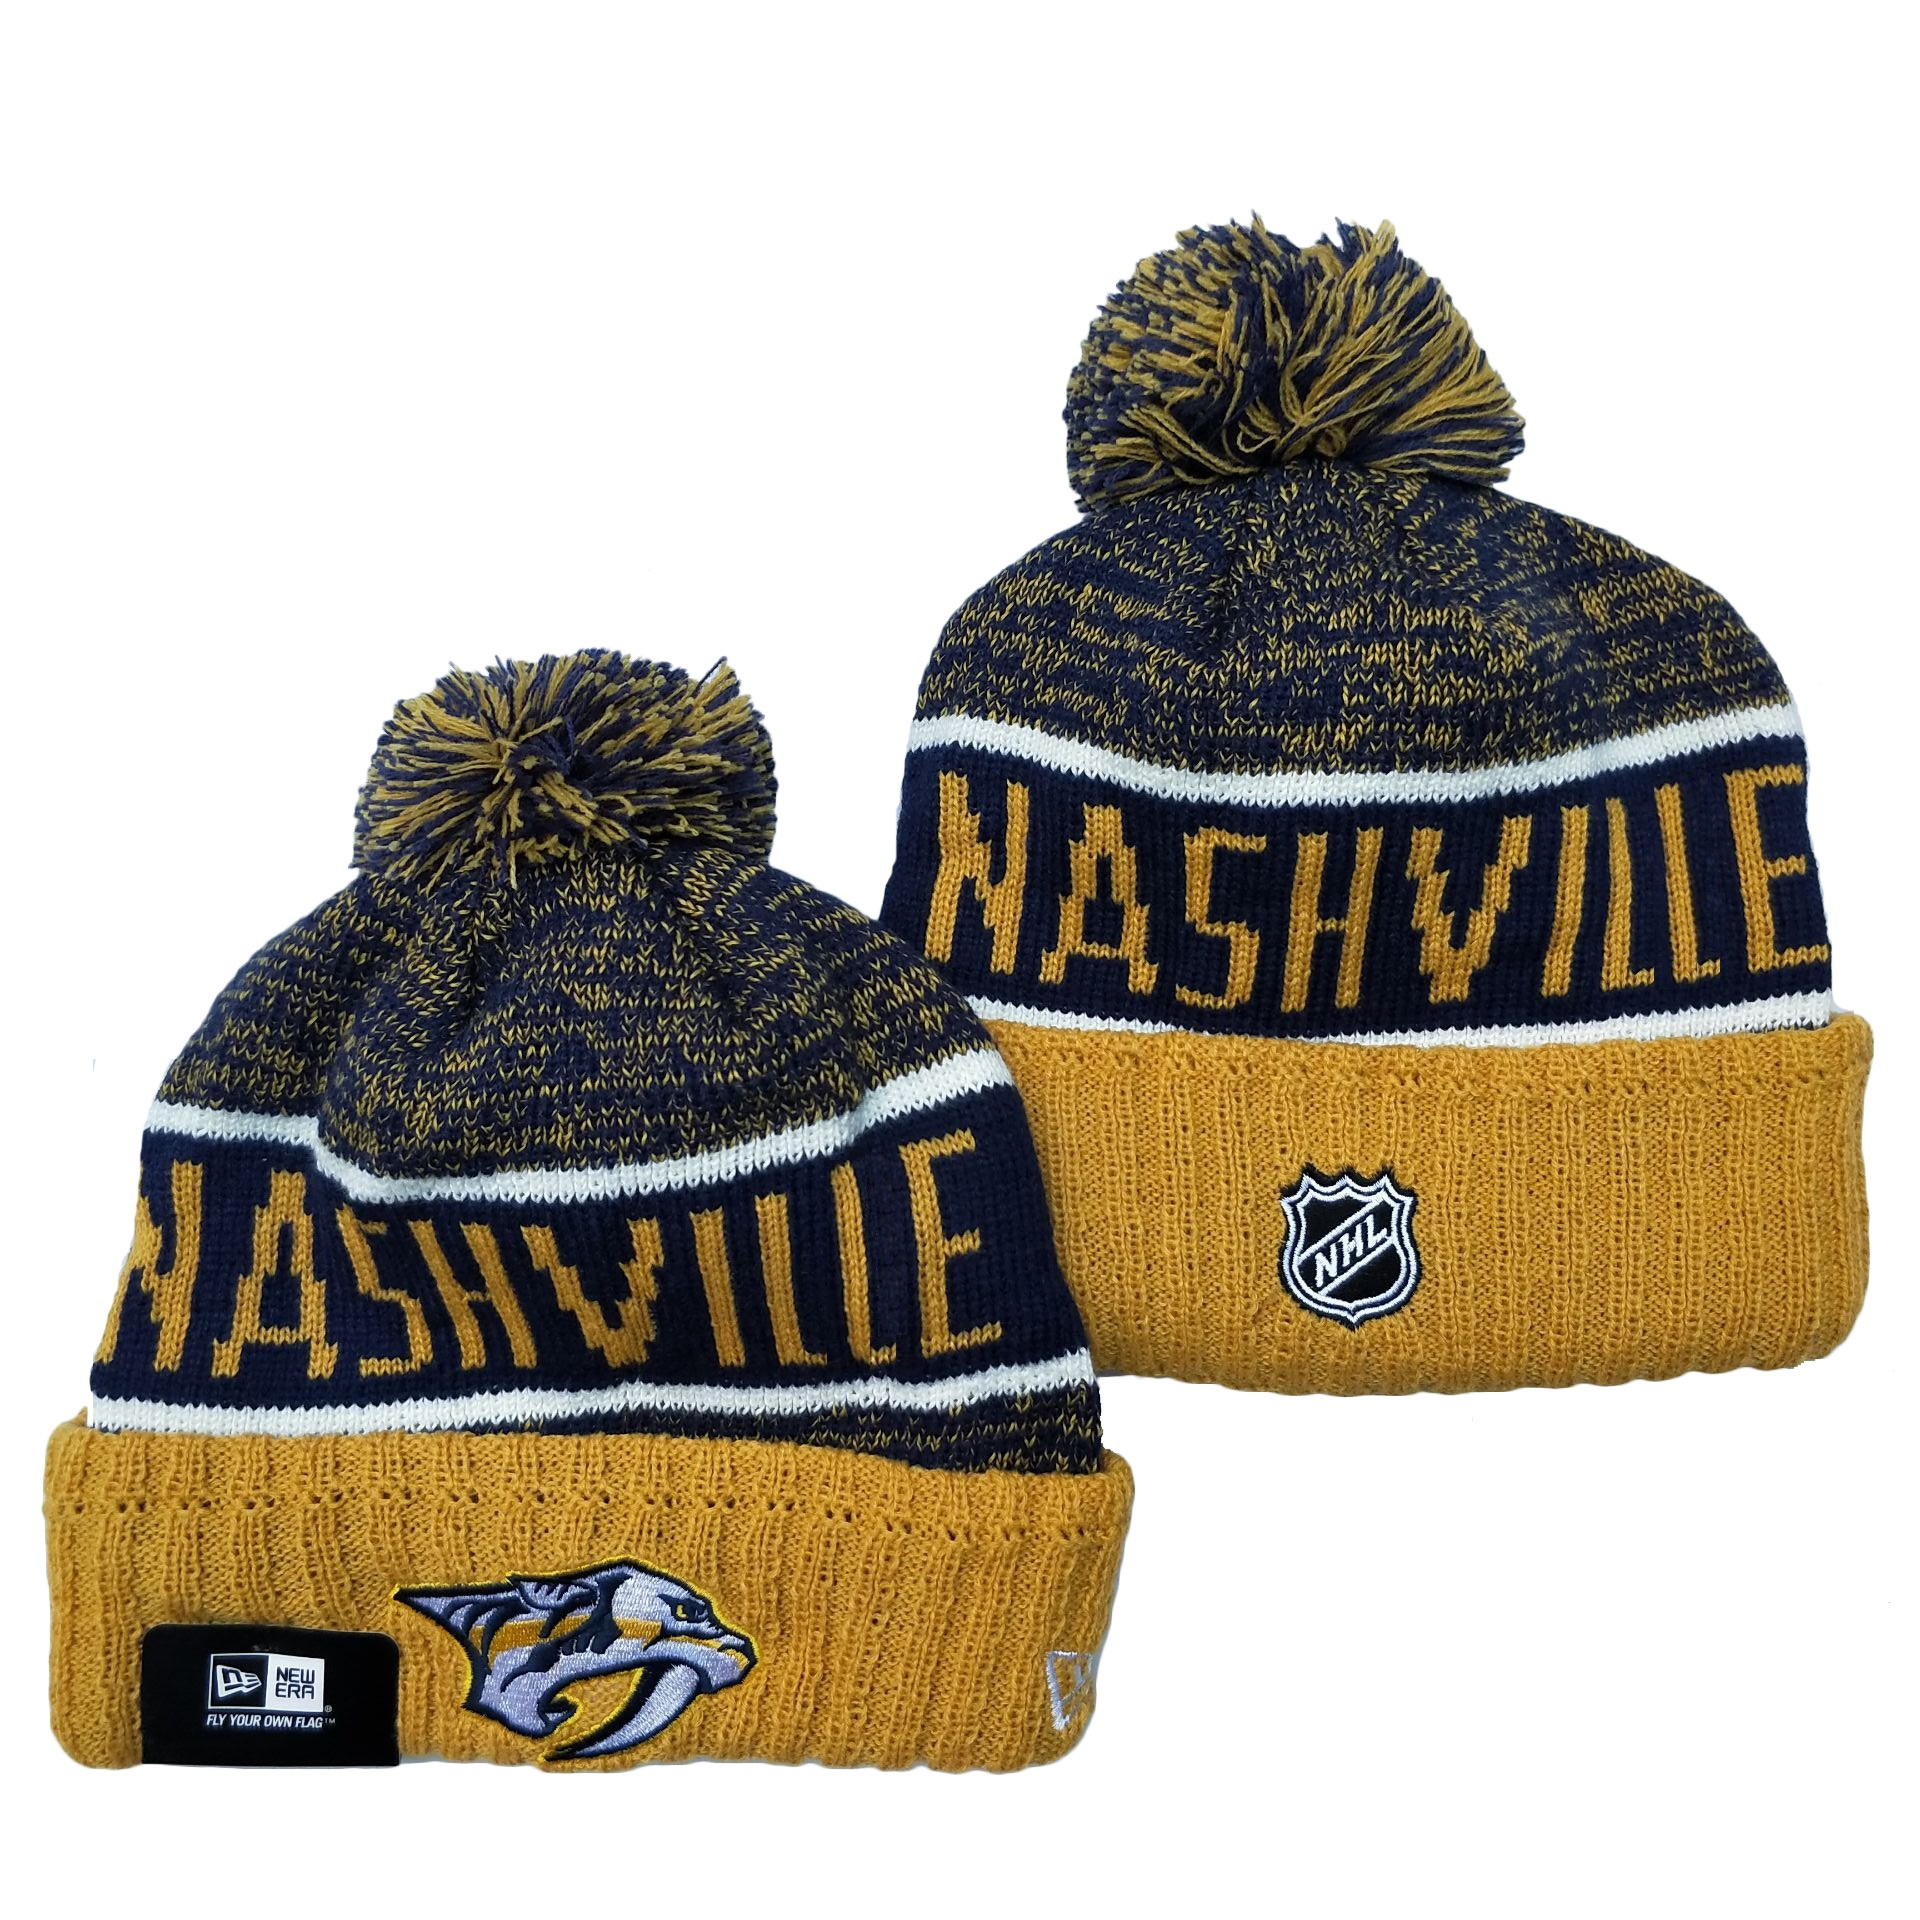 Predators Team Logo Navy Yellow Pom Cuffed Knit Hat YD